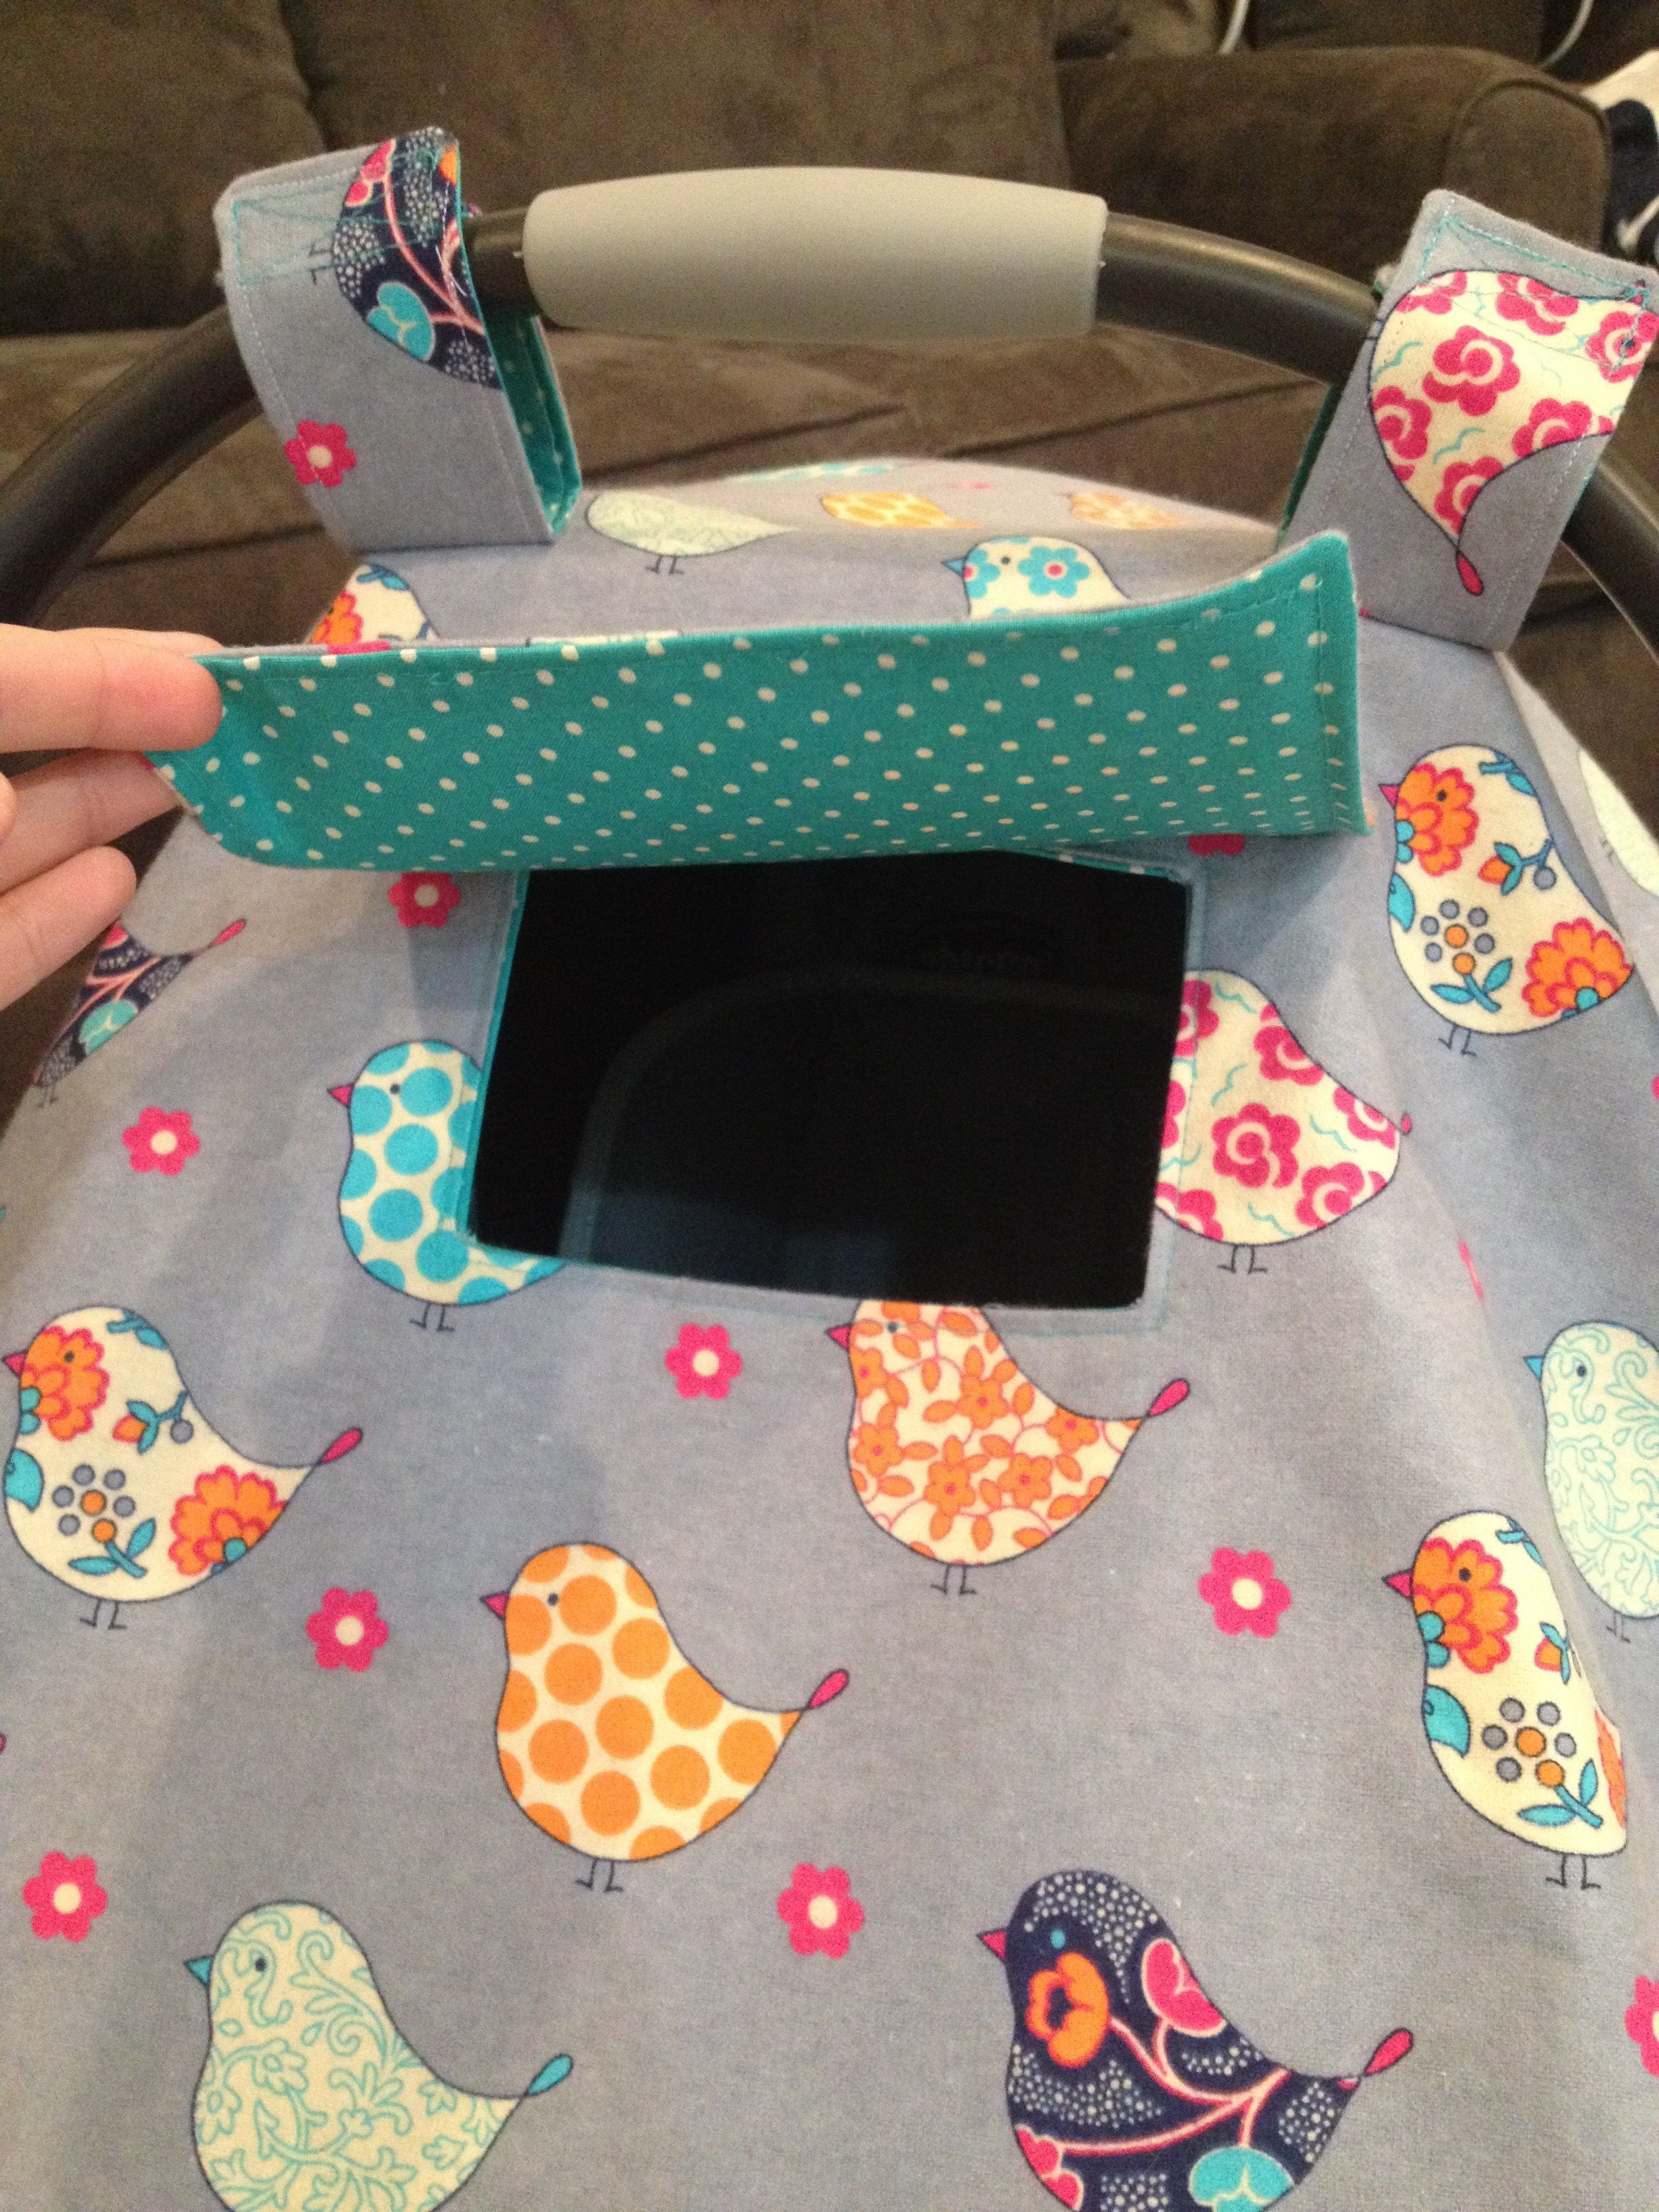 DIY Car Seat Cover Tutorial! Make this adorable Car Seat Cover with ...